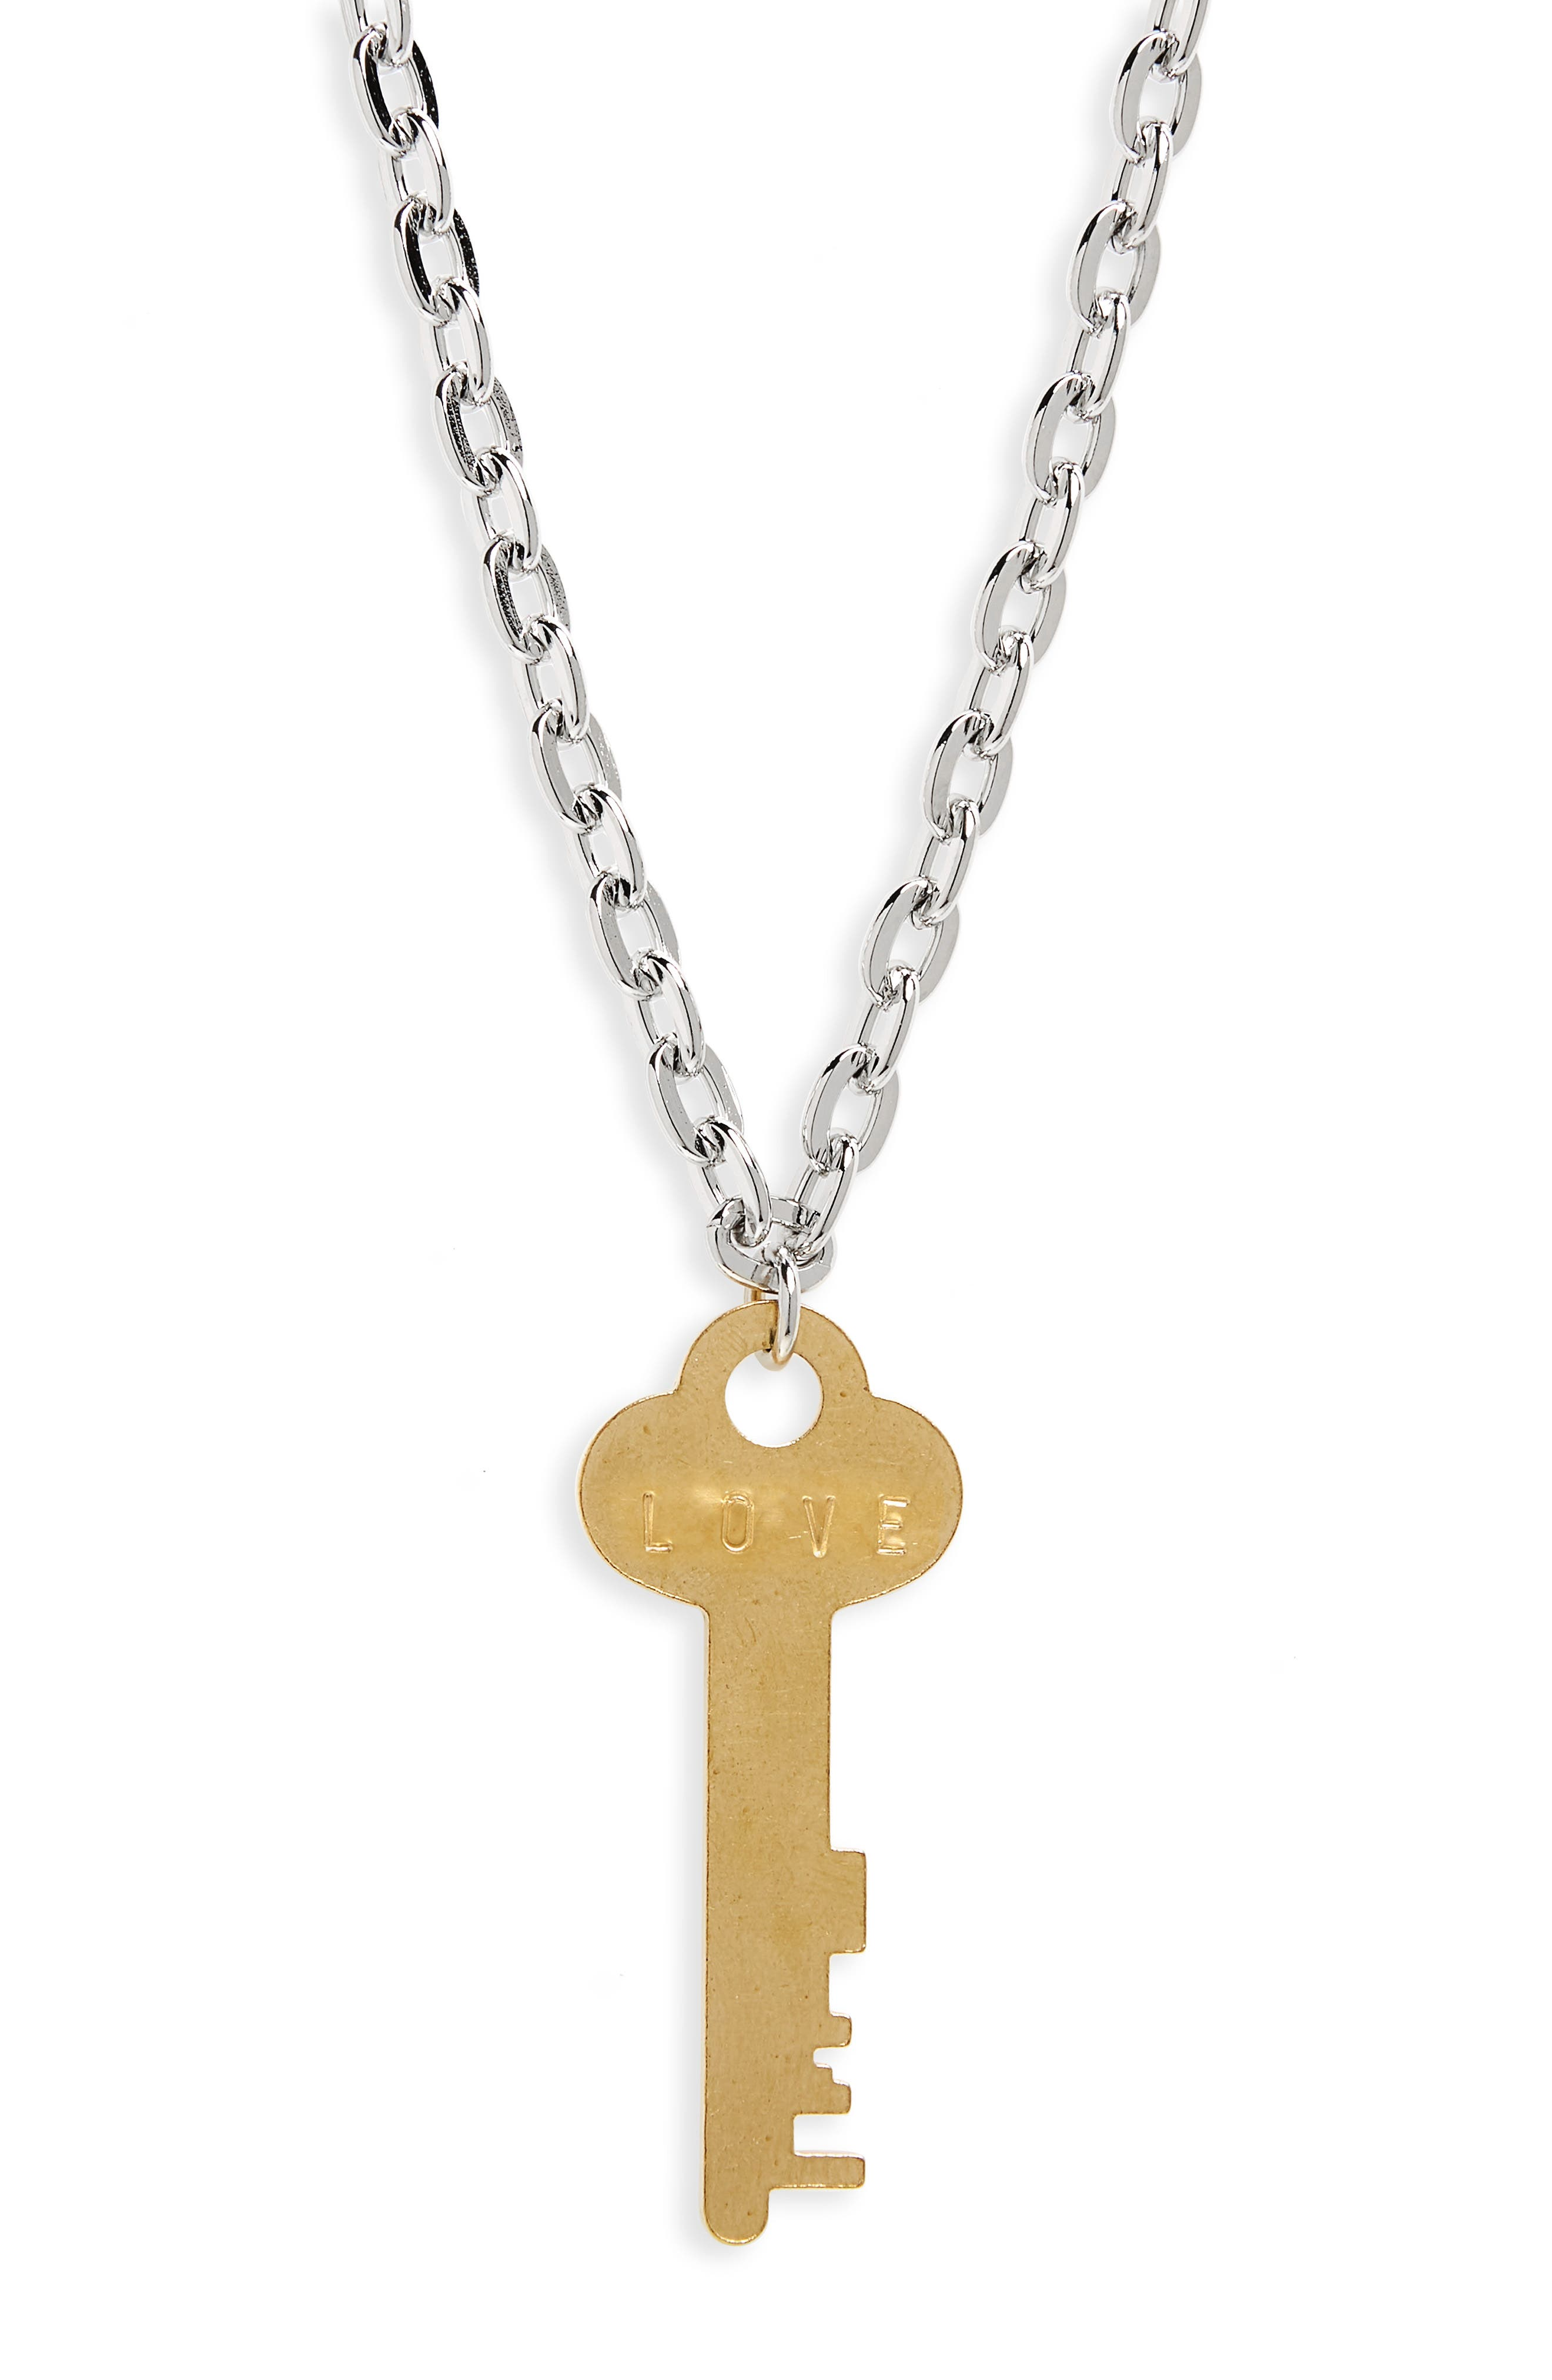 I Am Love Key Charm Necklace,                             Alternate thumbnail 5, color,